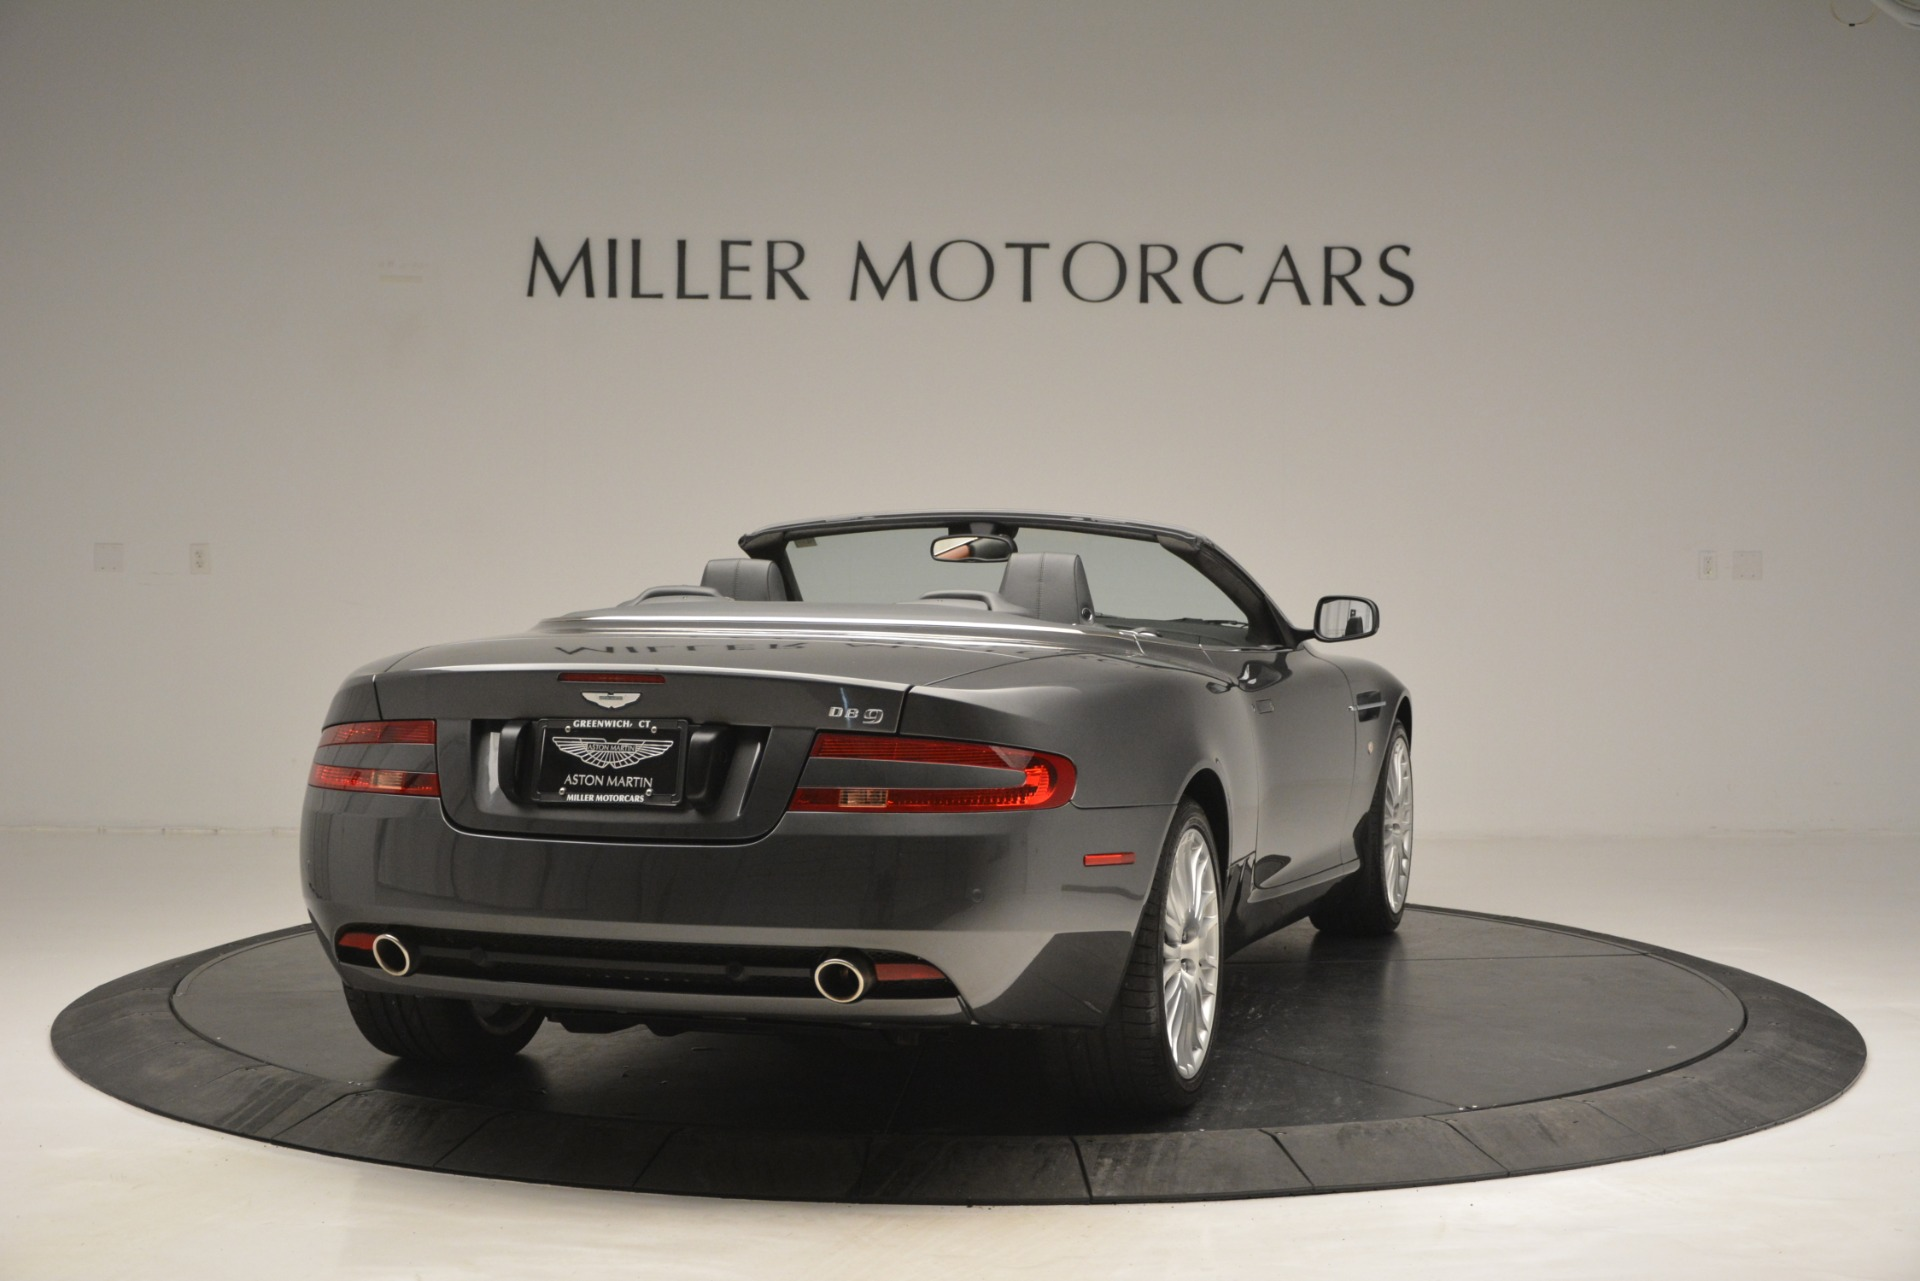 Used 2009 Aston Martin DB9 Convertible For Sale In Westport, CT 2930_p7